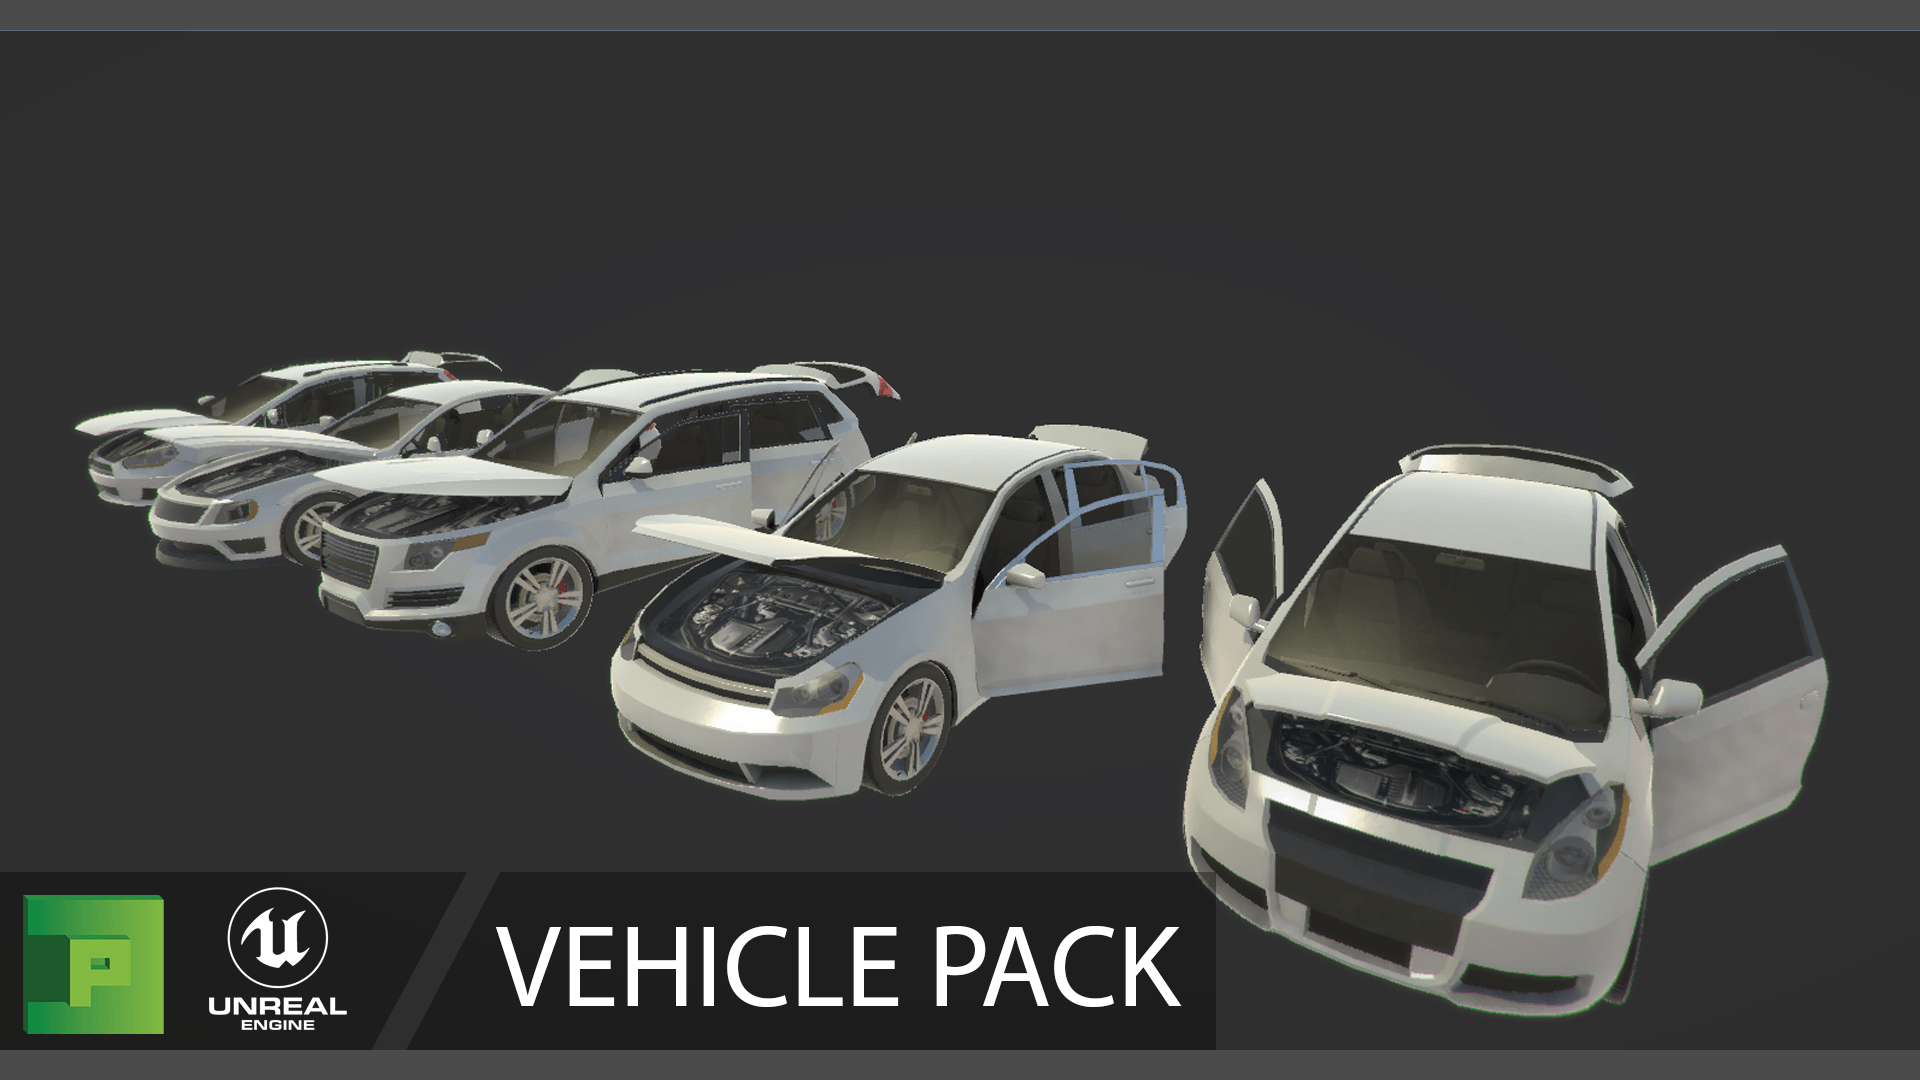 VehiclePack_14